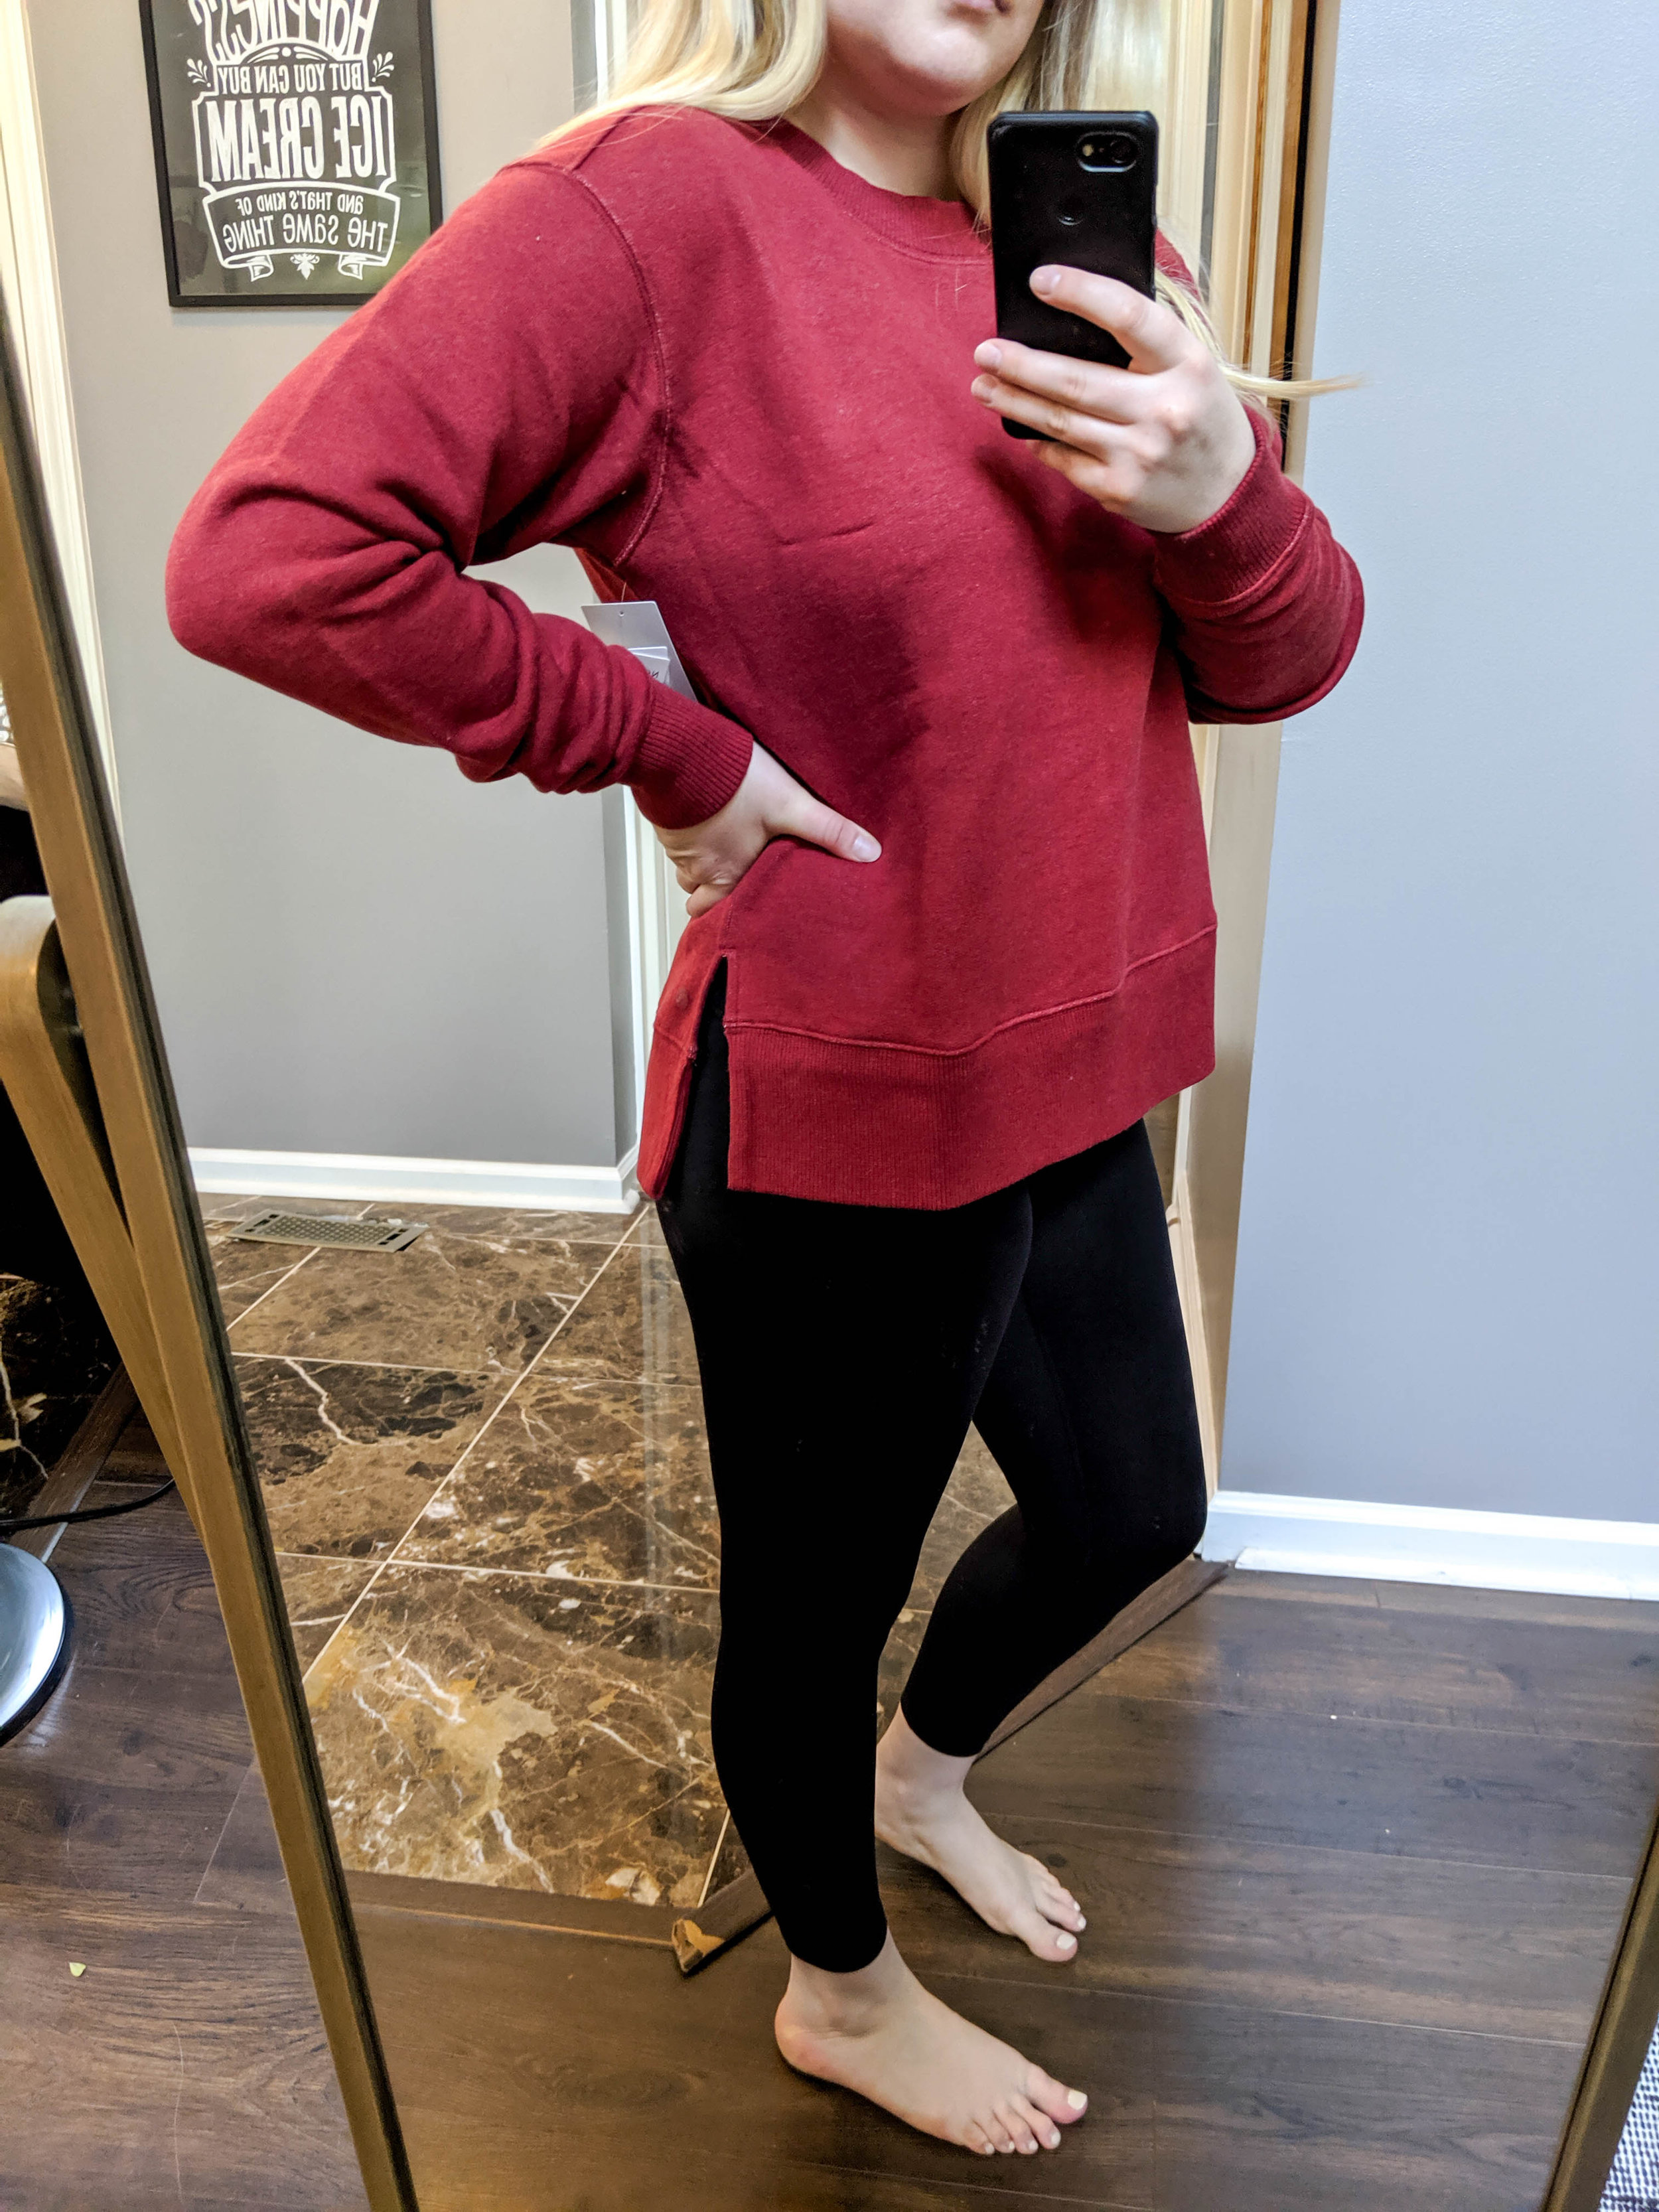 Maggie a la Mode 2019 Nordstrom Anniversary Sale Review Try On Real Body SPANX Active 7/8 Leggings Zella Nola High/Low Sweatshirt